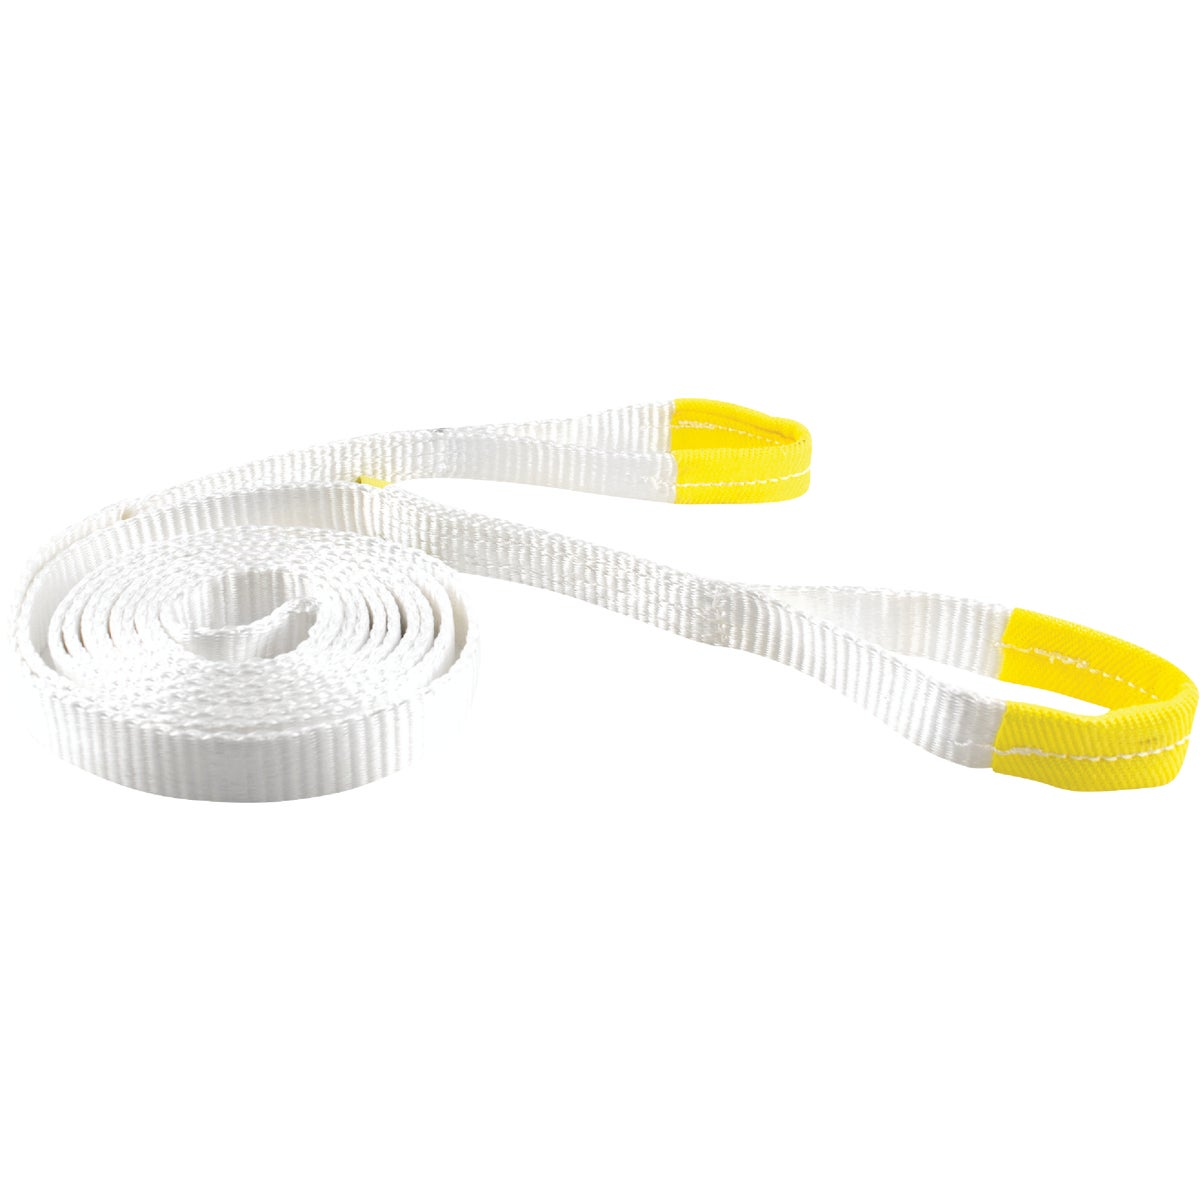 "1""X15' RECOVERY STRAP - 59350 by Erickson Mfg Ltd"